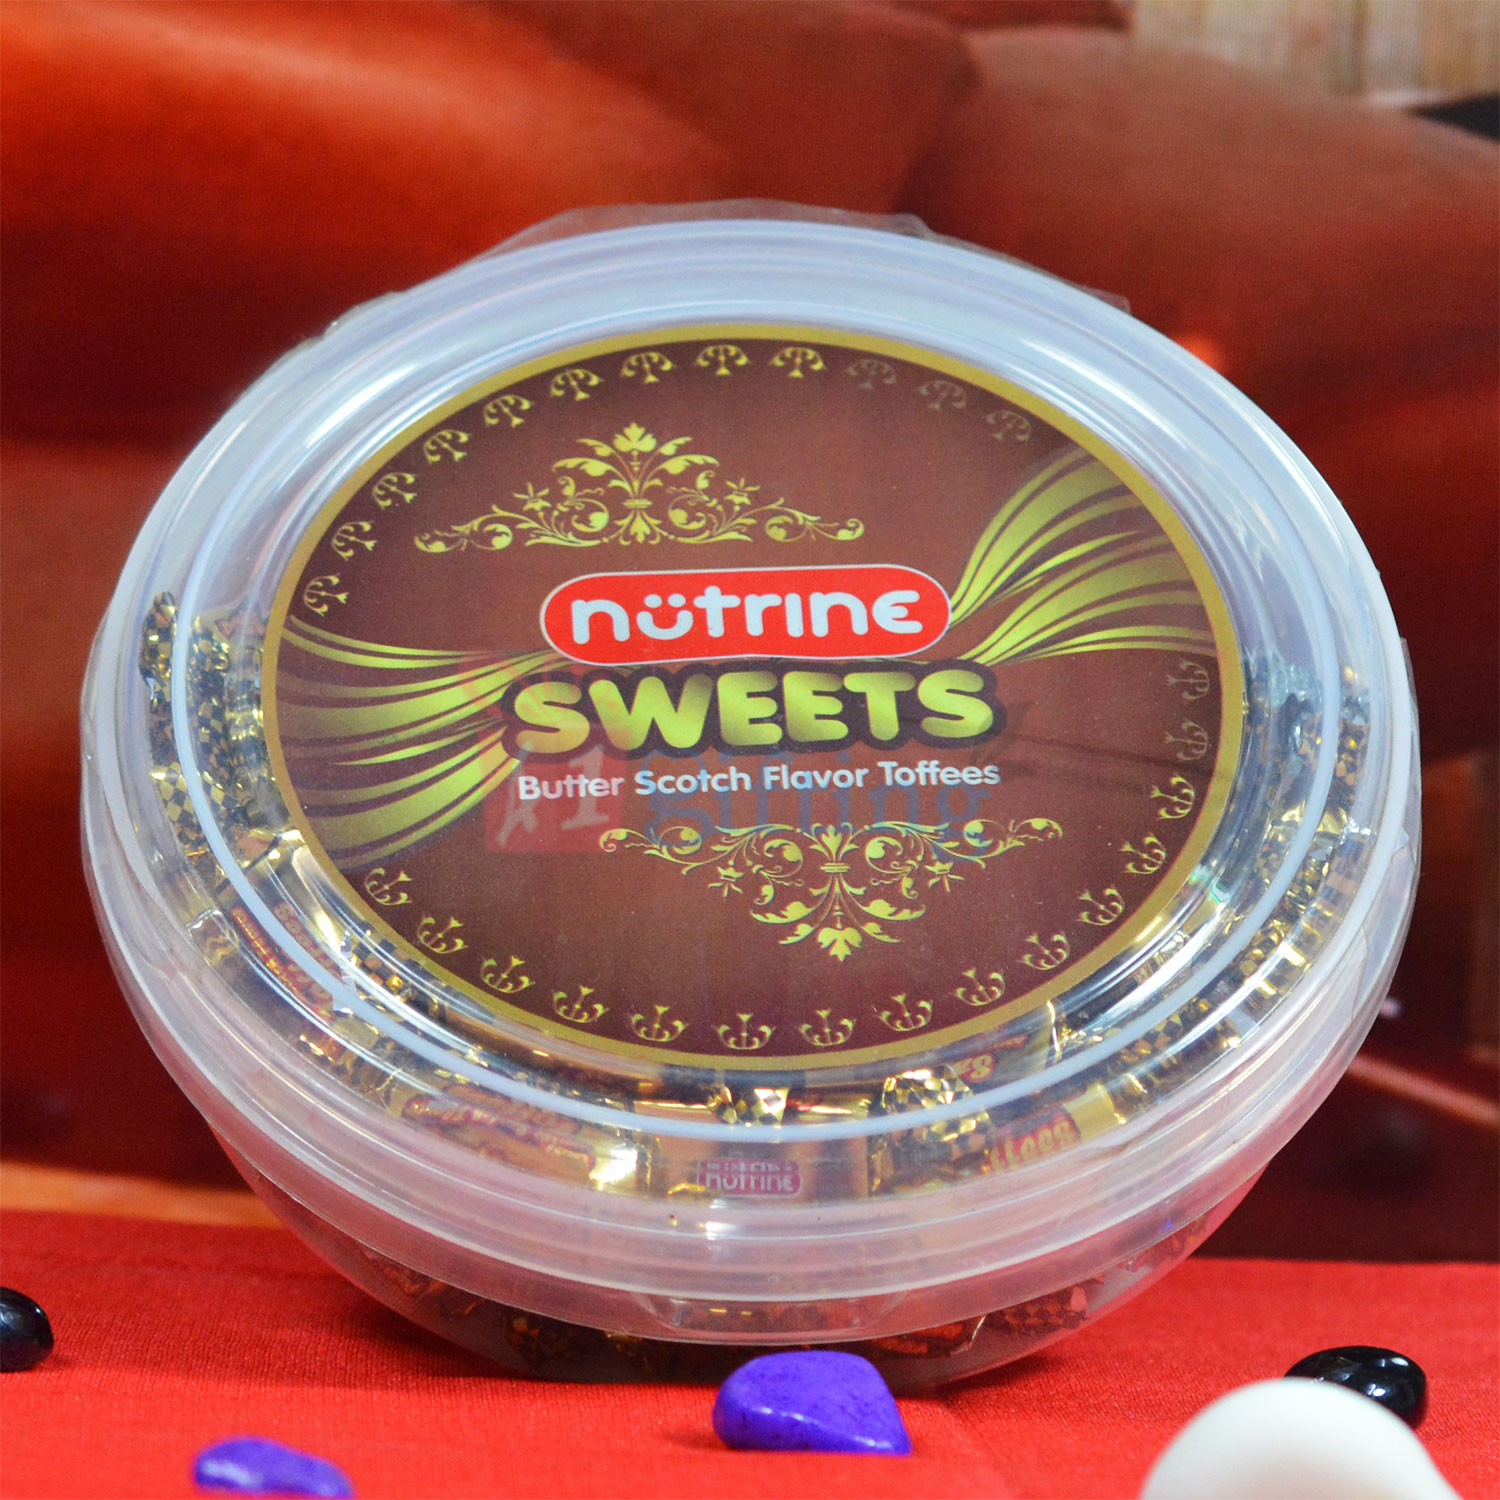 Nutrine Sweets Butter Scotch Flavor Toffees